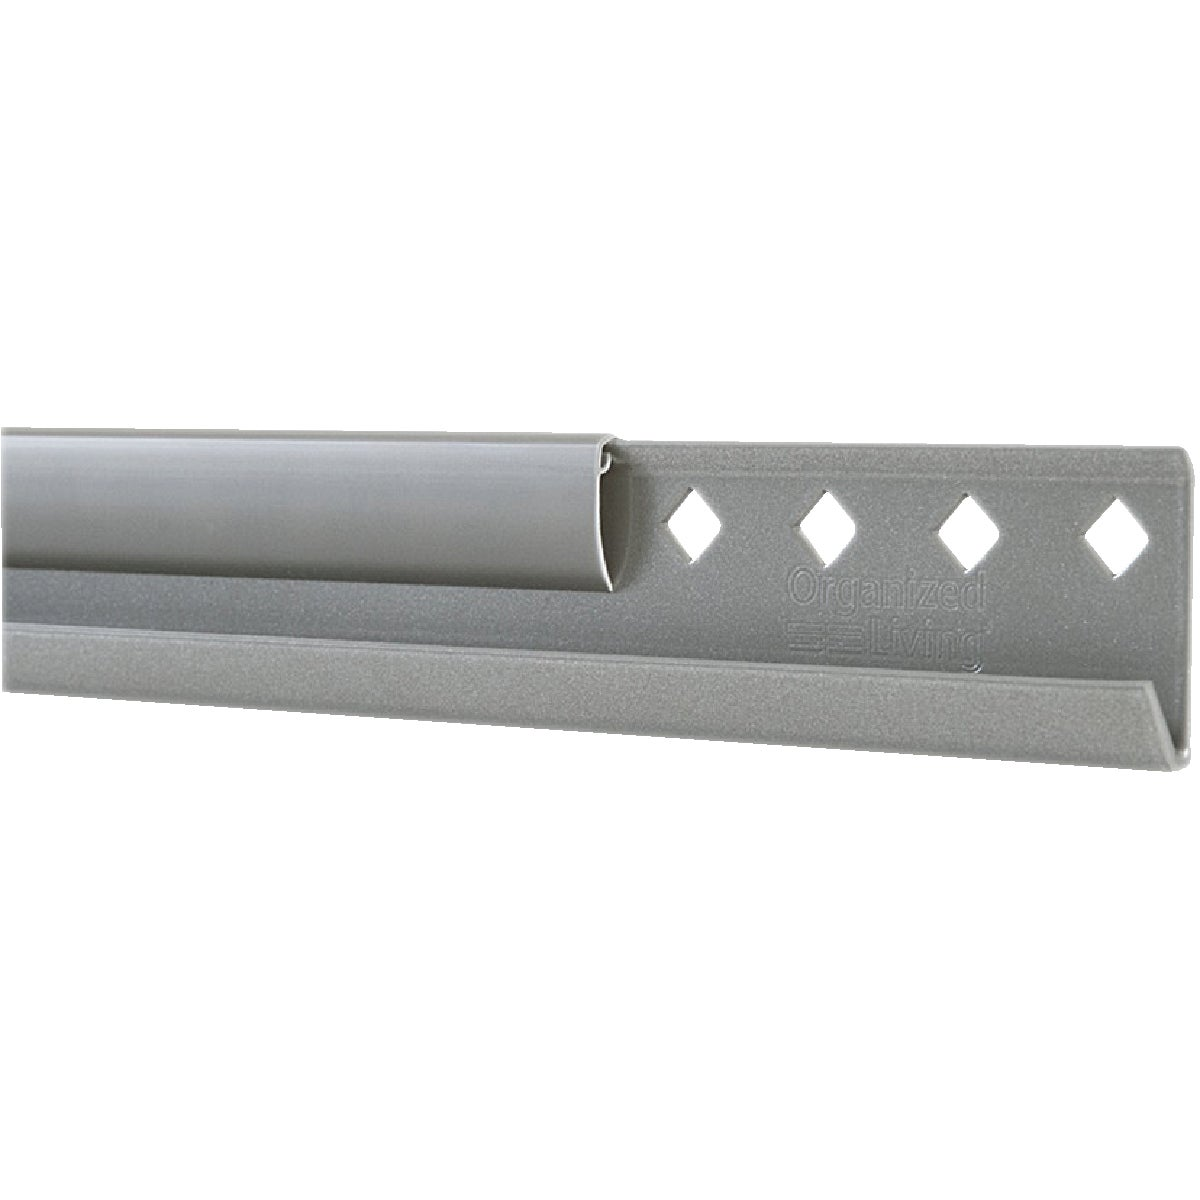 "80"" NICKEL HANGING RAIL"